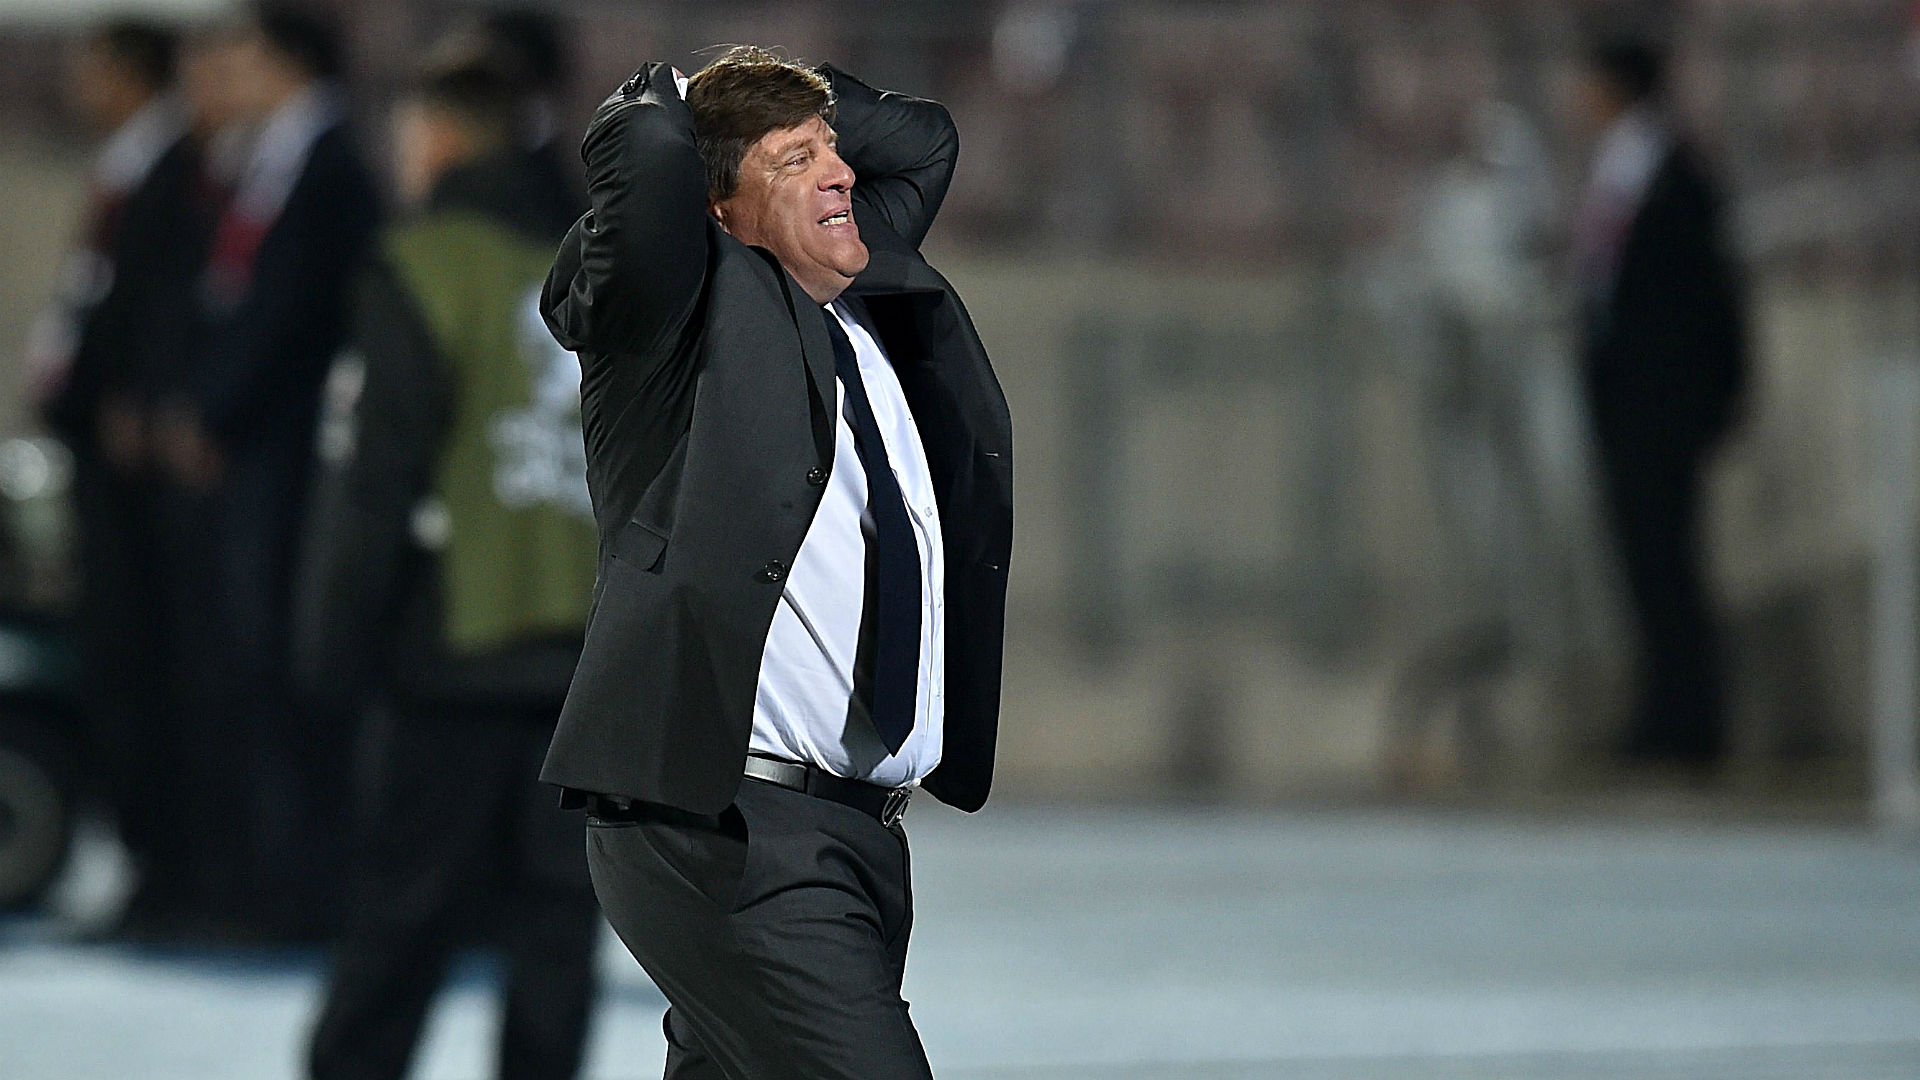 Mexico coach Miguel Herrera fired after allegedly punching reporter